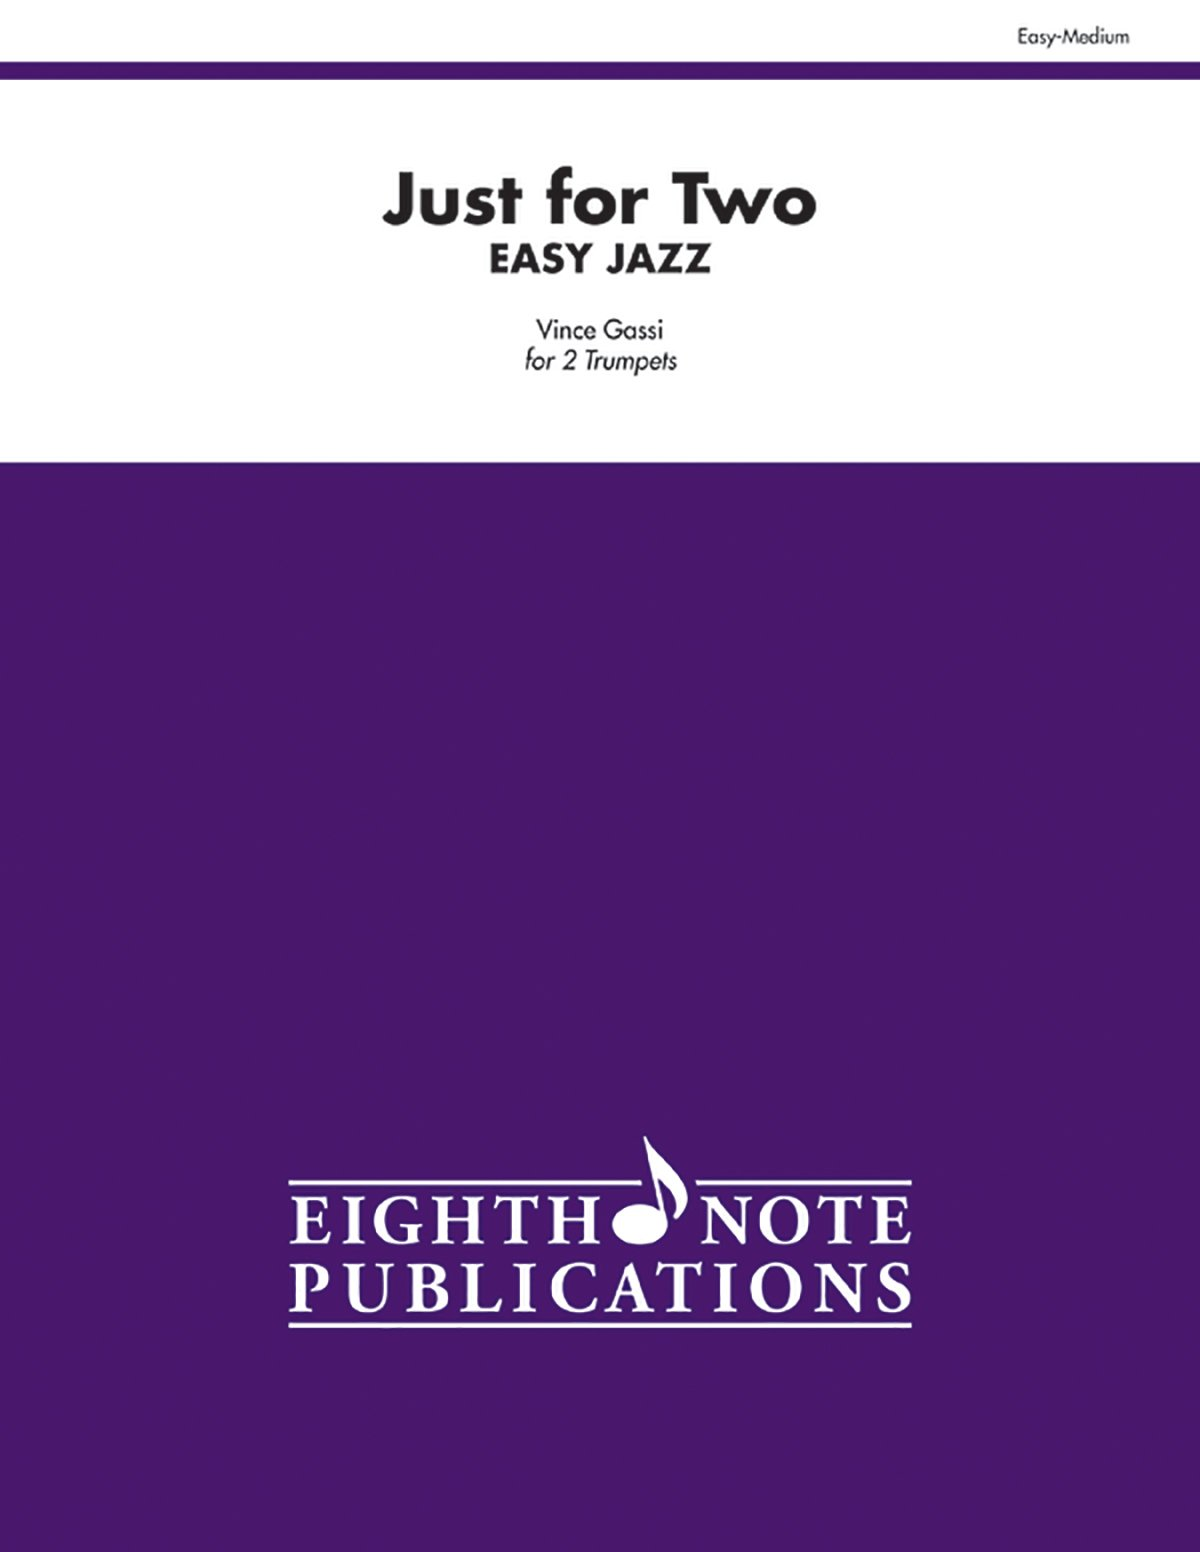 Just for Two Easy Jazz: 2 Trumpets (Eighth Note Publications) PDF